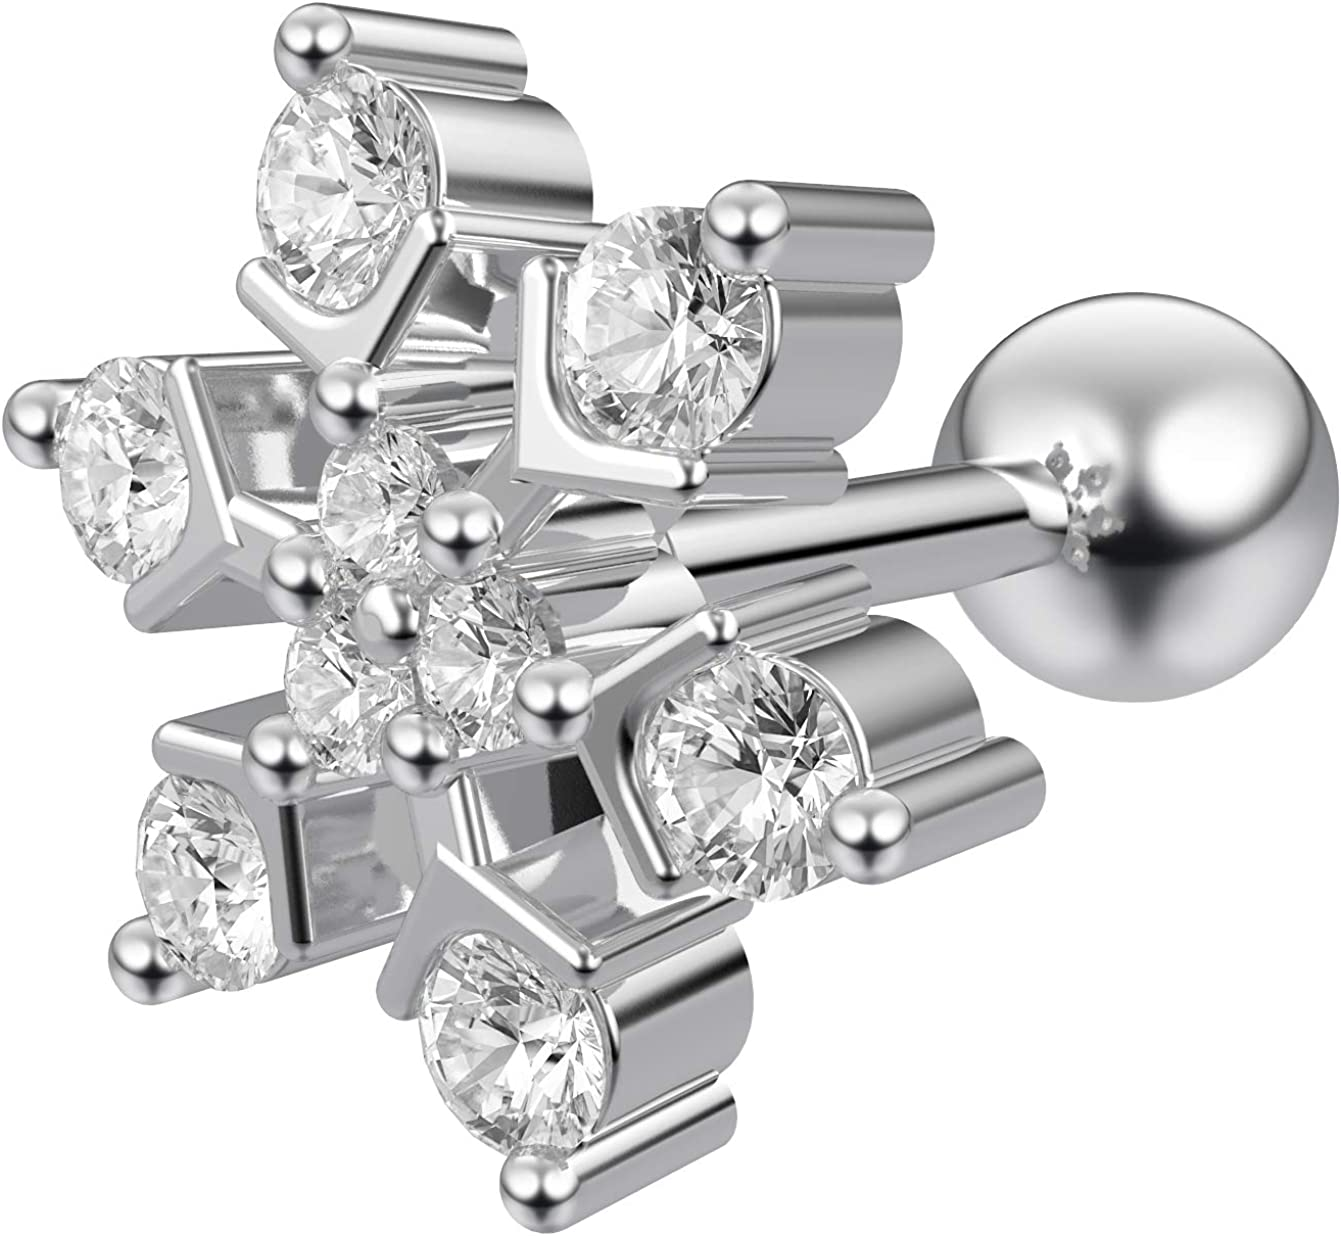 Bling Piercing 2pc 16g 1/4 Cartilage Earring Stud CZ Snowflake Barbell Helix Tragus Lobe Auricle Surgical Steel